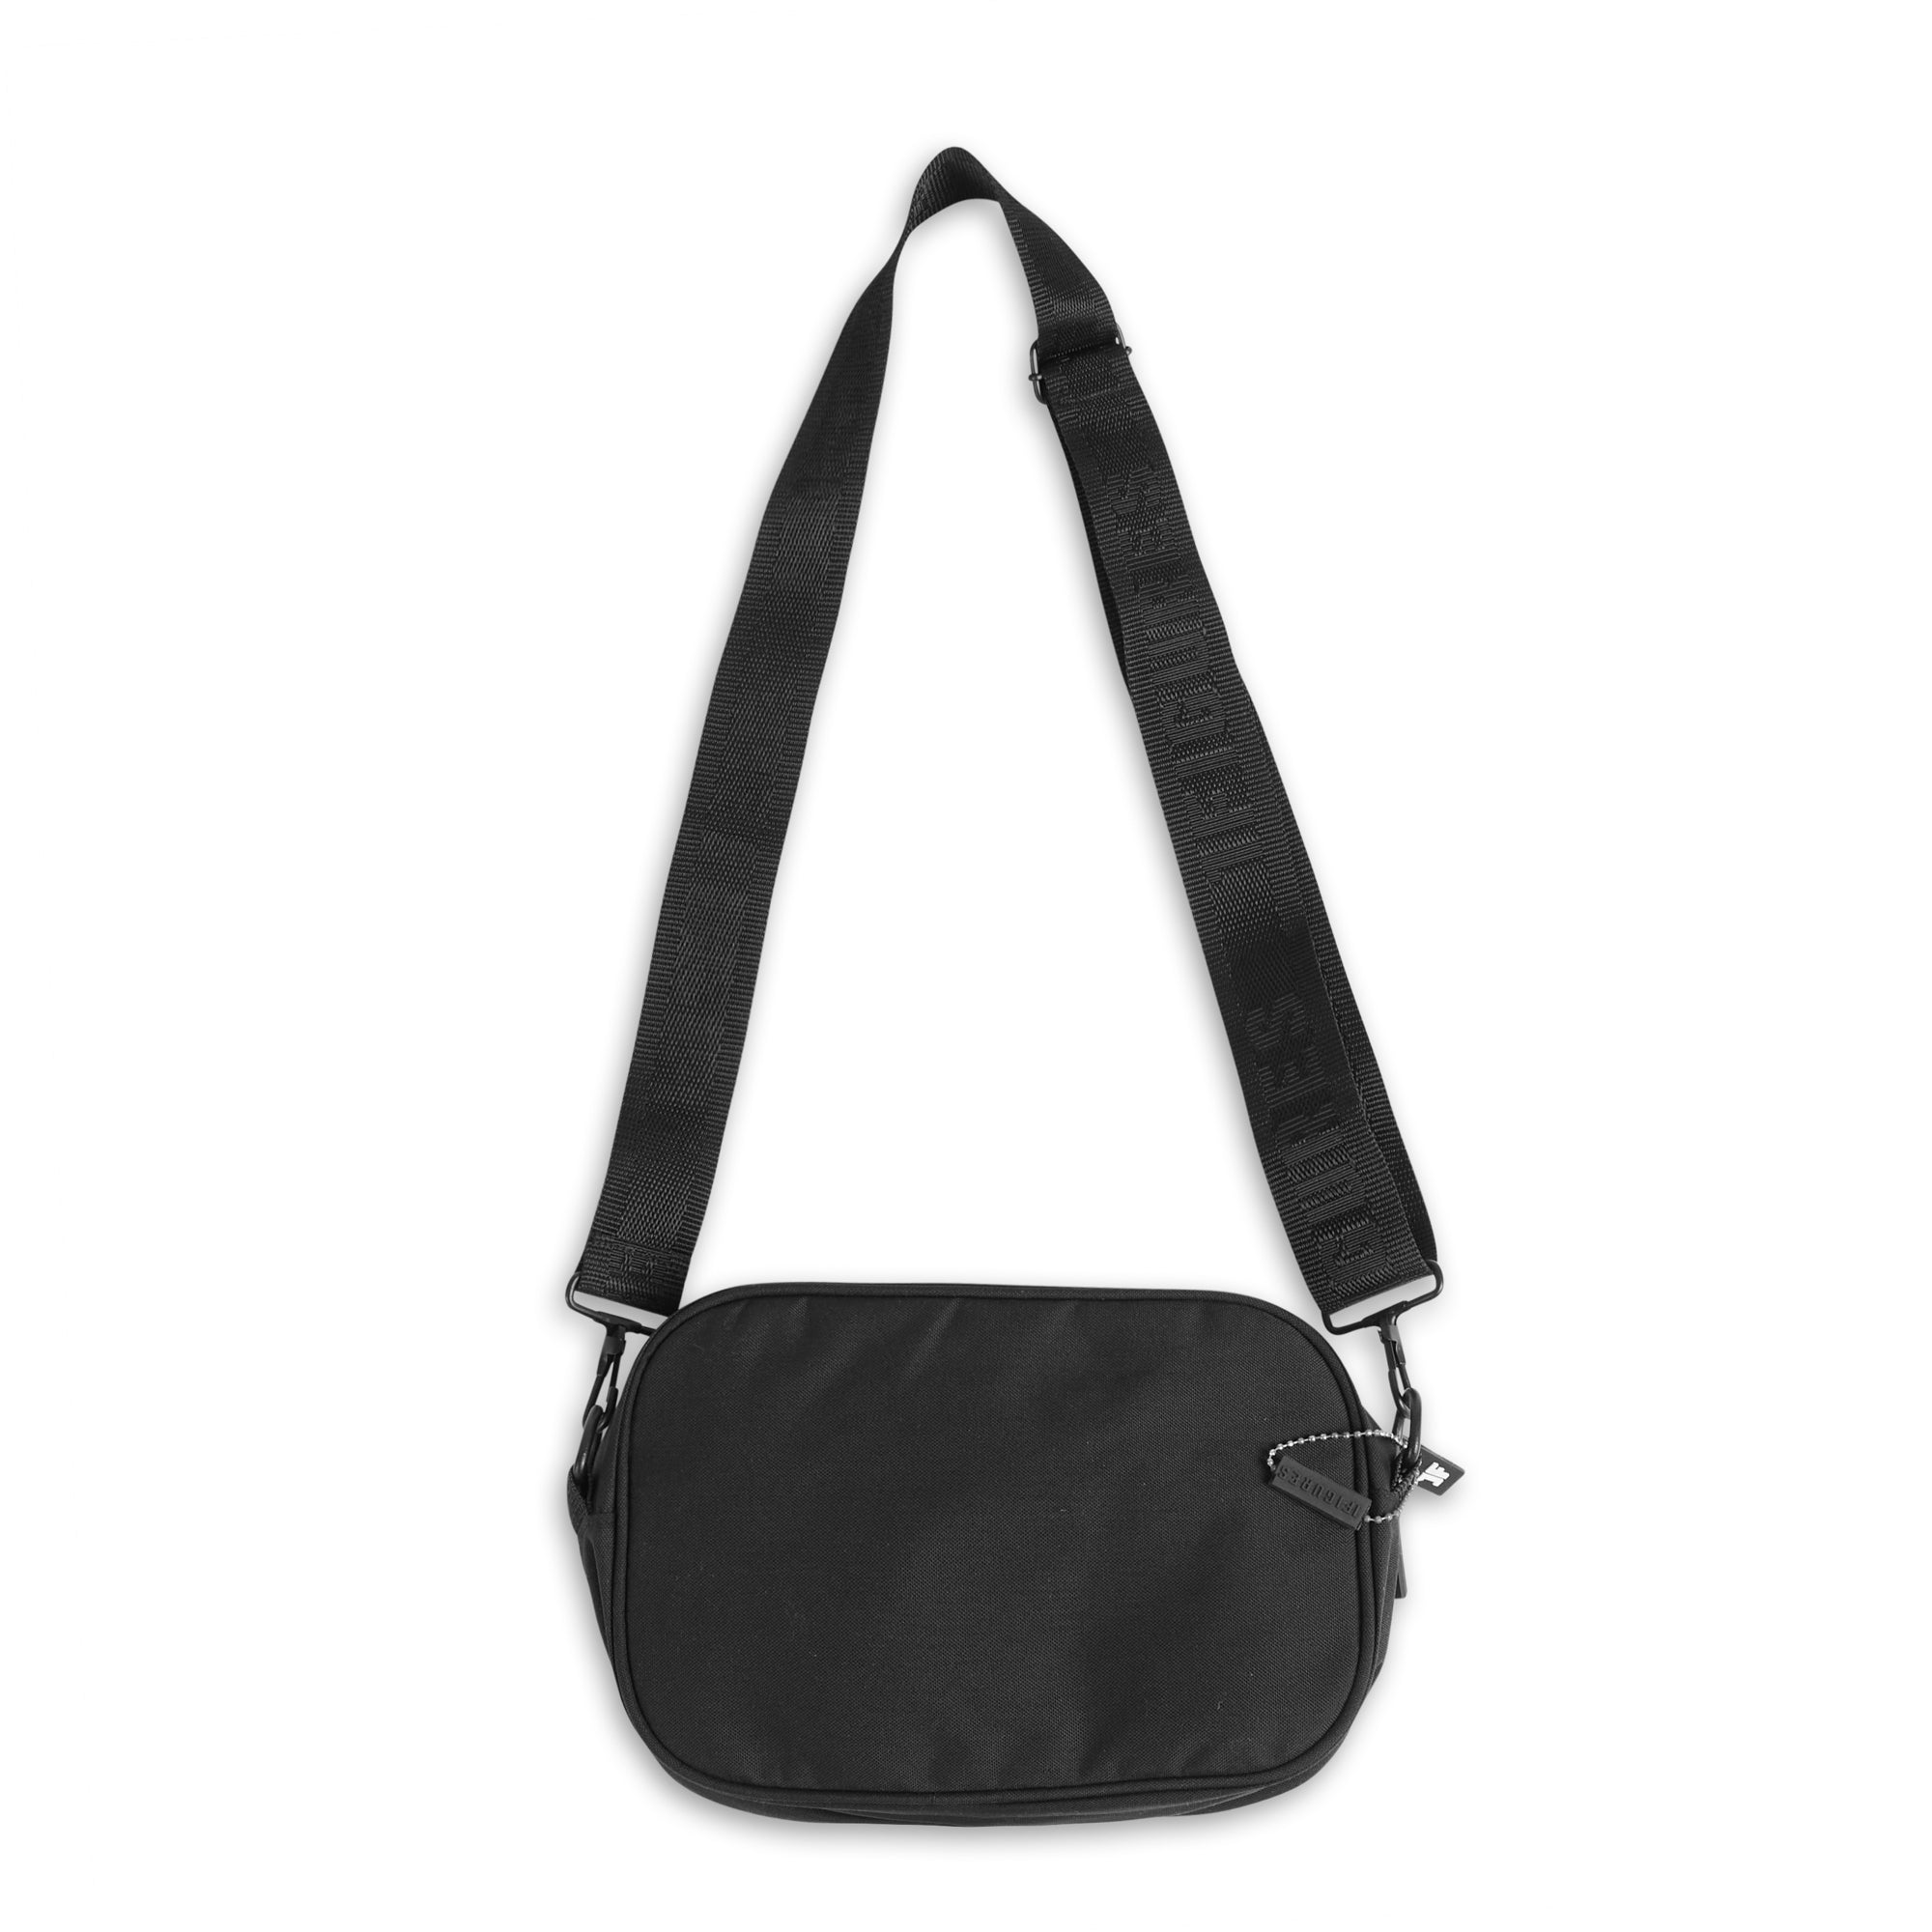 1FIGURES - OULTON BAG